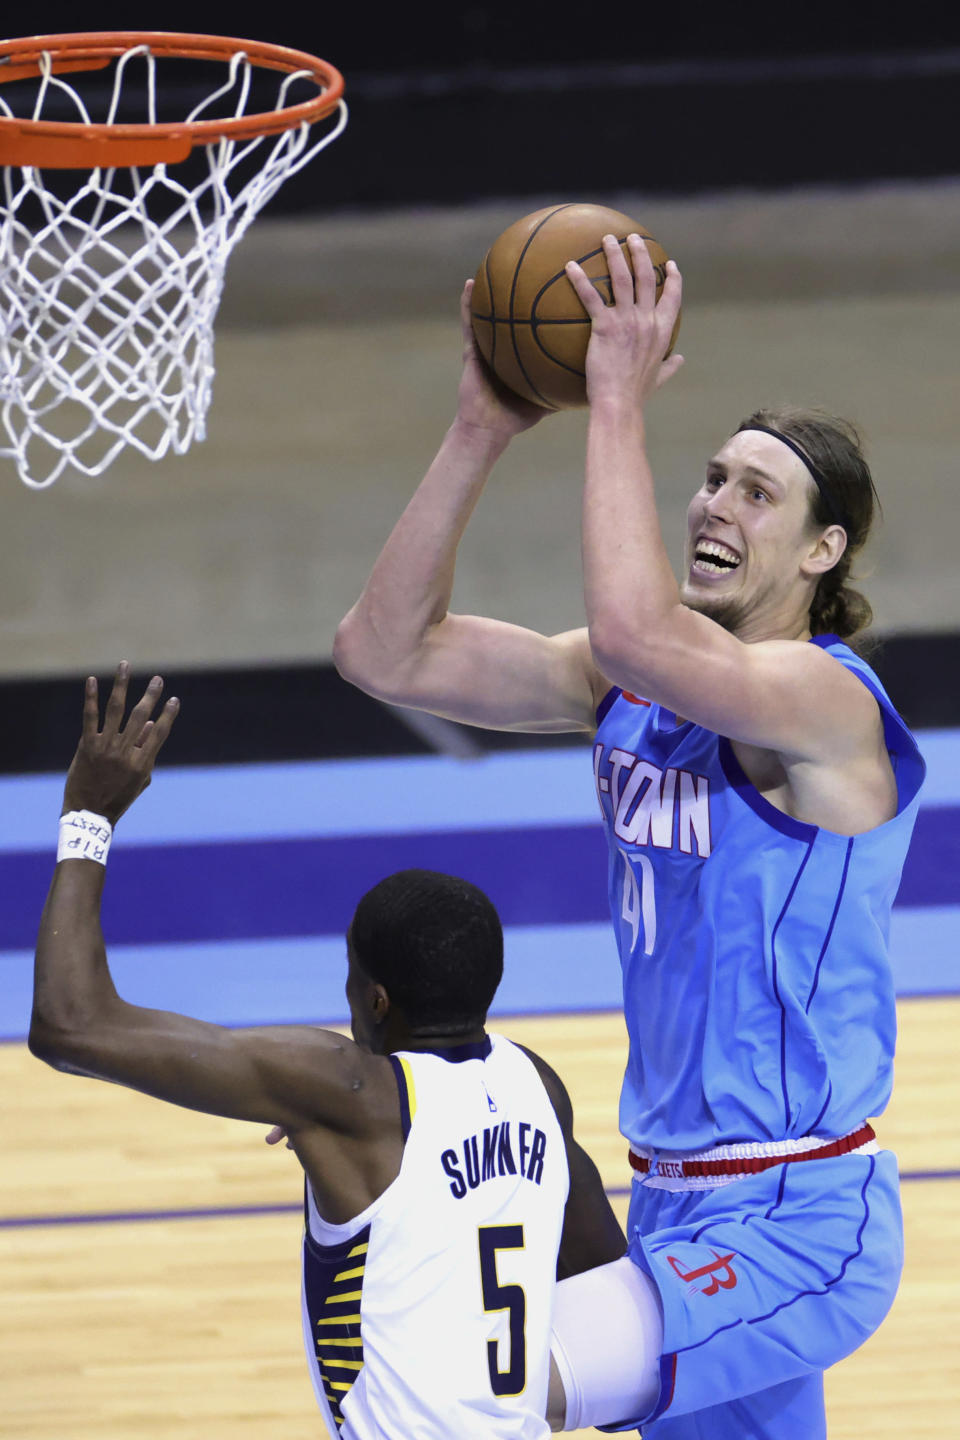 Houston Rockets' Kelly Olynyk drives to the basket over Indiana Pacers' Edmond Sumner during the third quarter of an NBA basketball game Wednesday, April 14, 2021, in Houston. (Carmen Mandato/Pool Photo via AP)